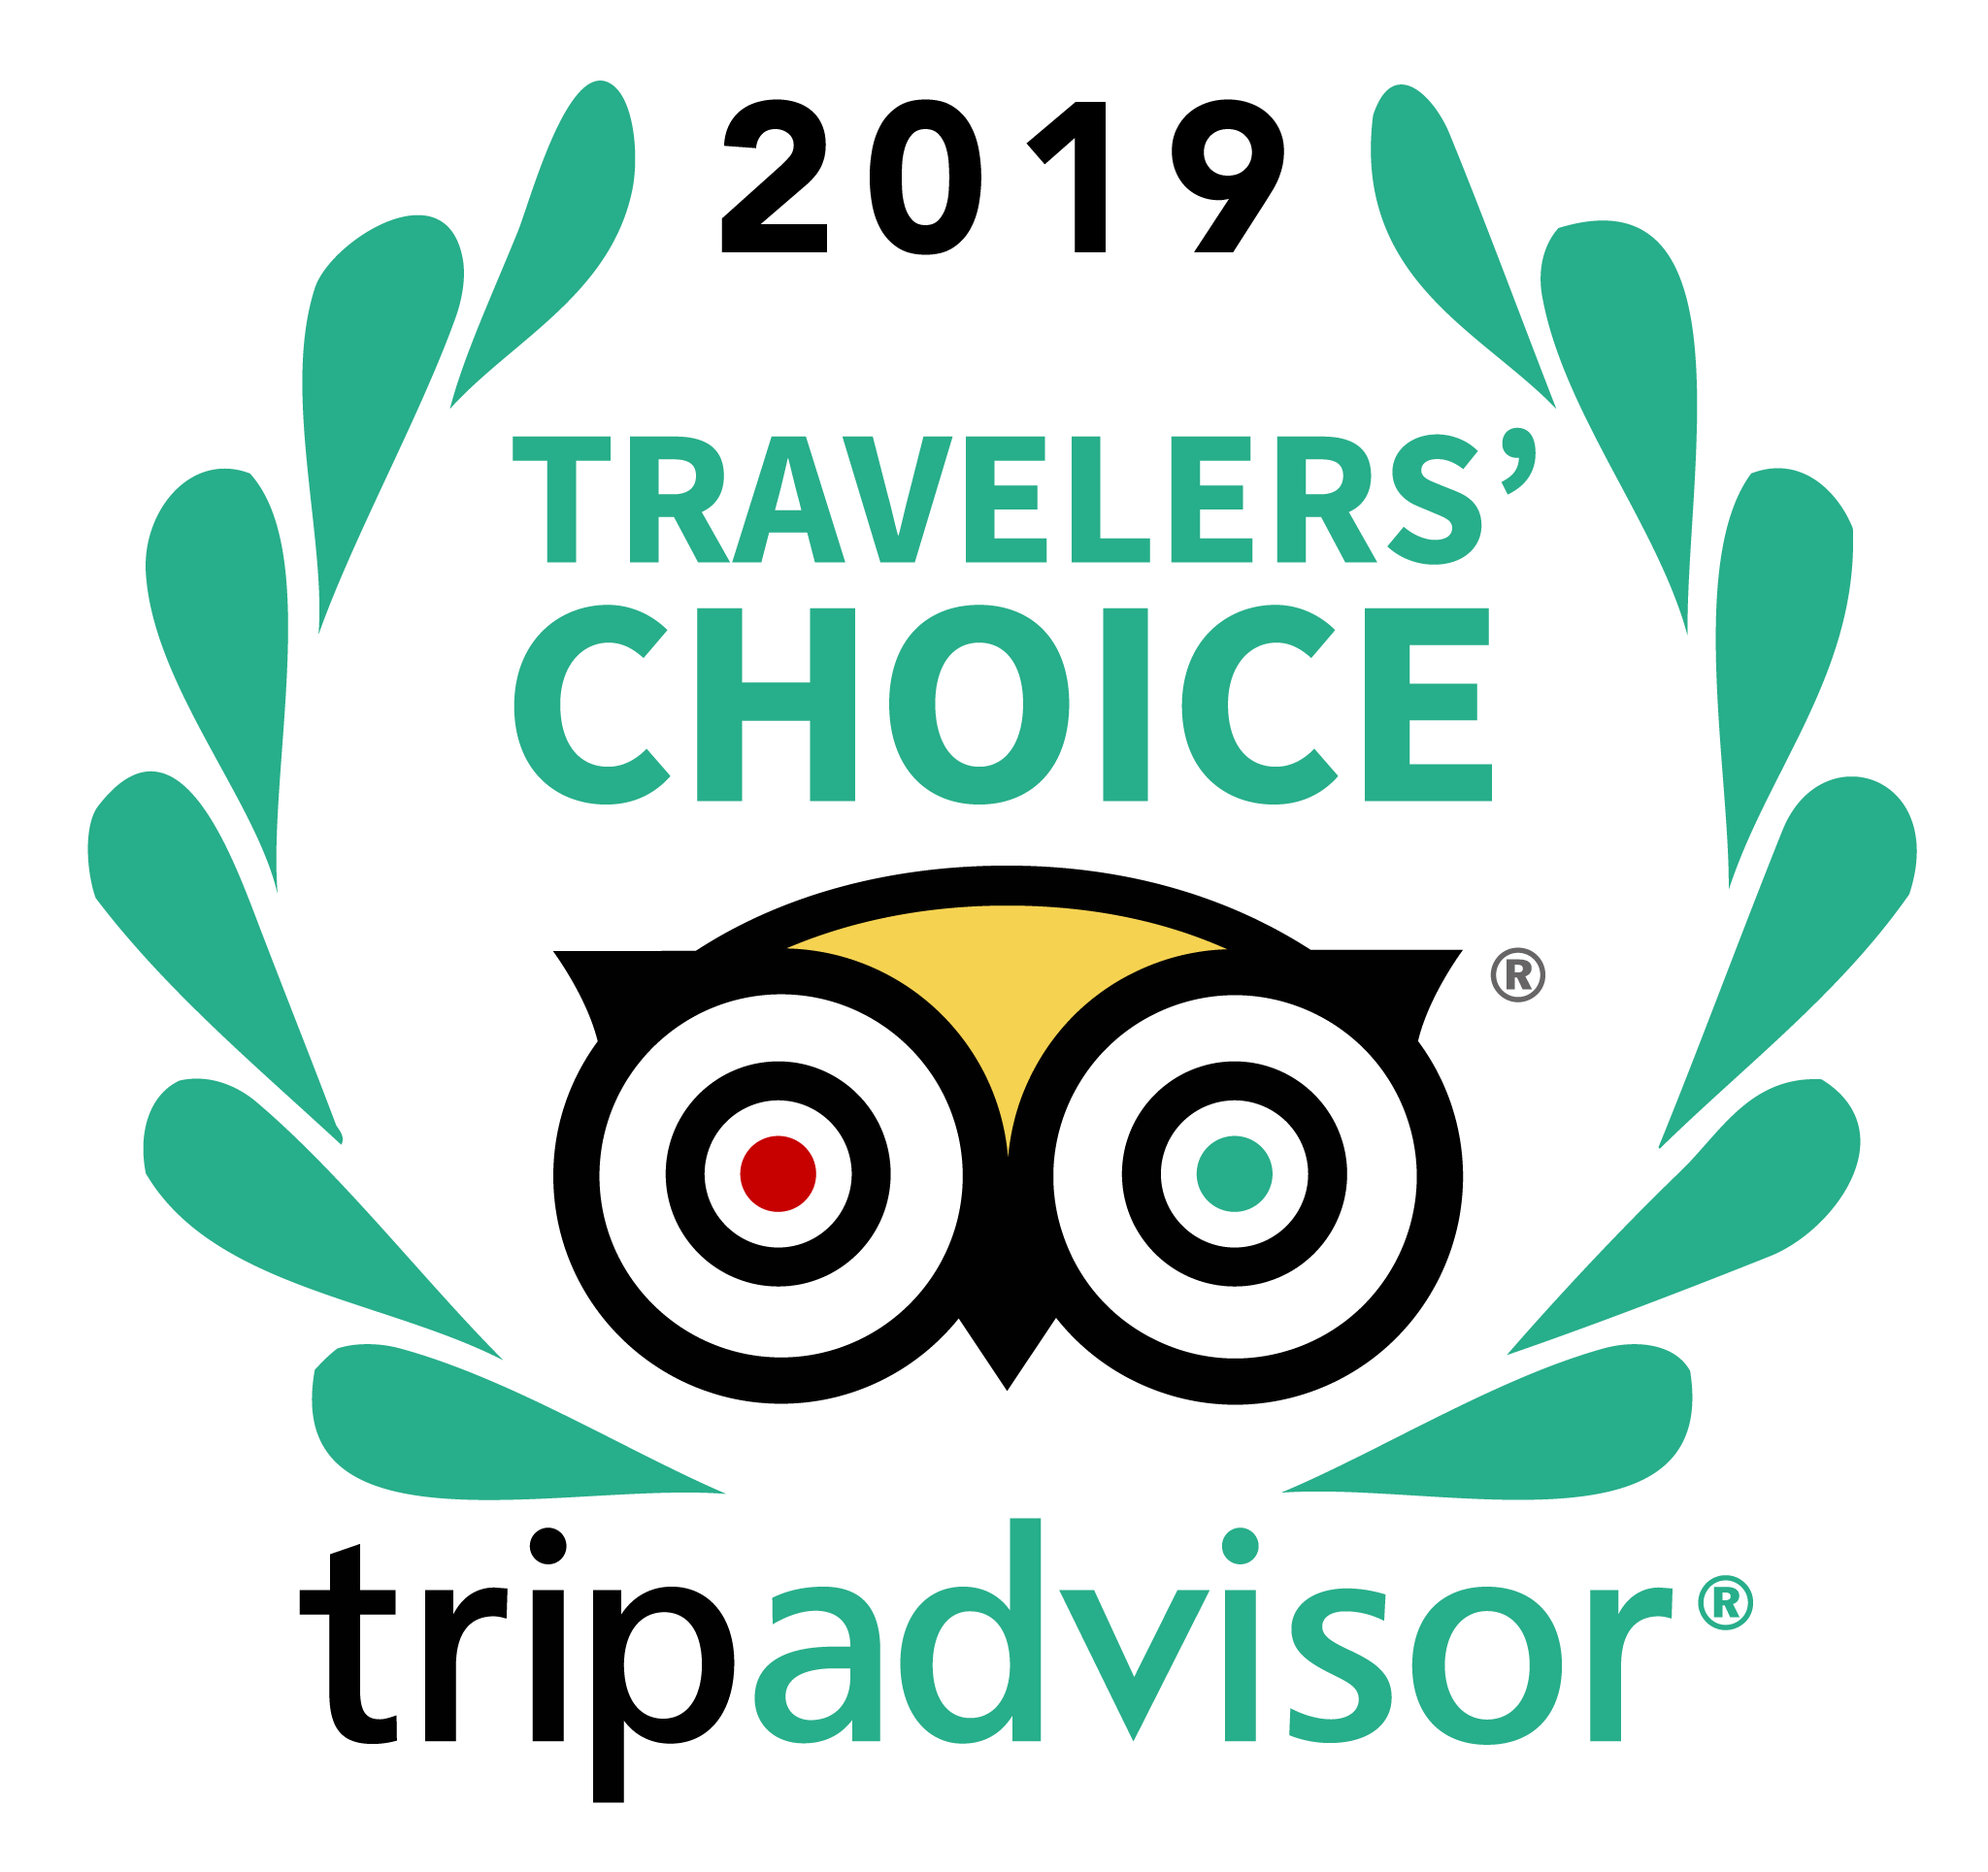 Travellers' Choice - TripAdvisor